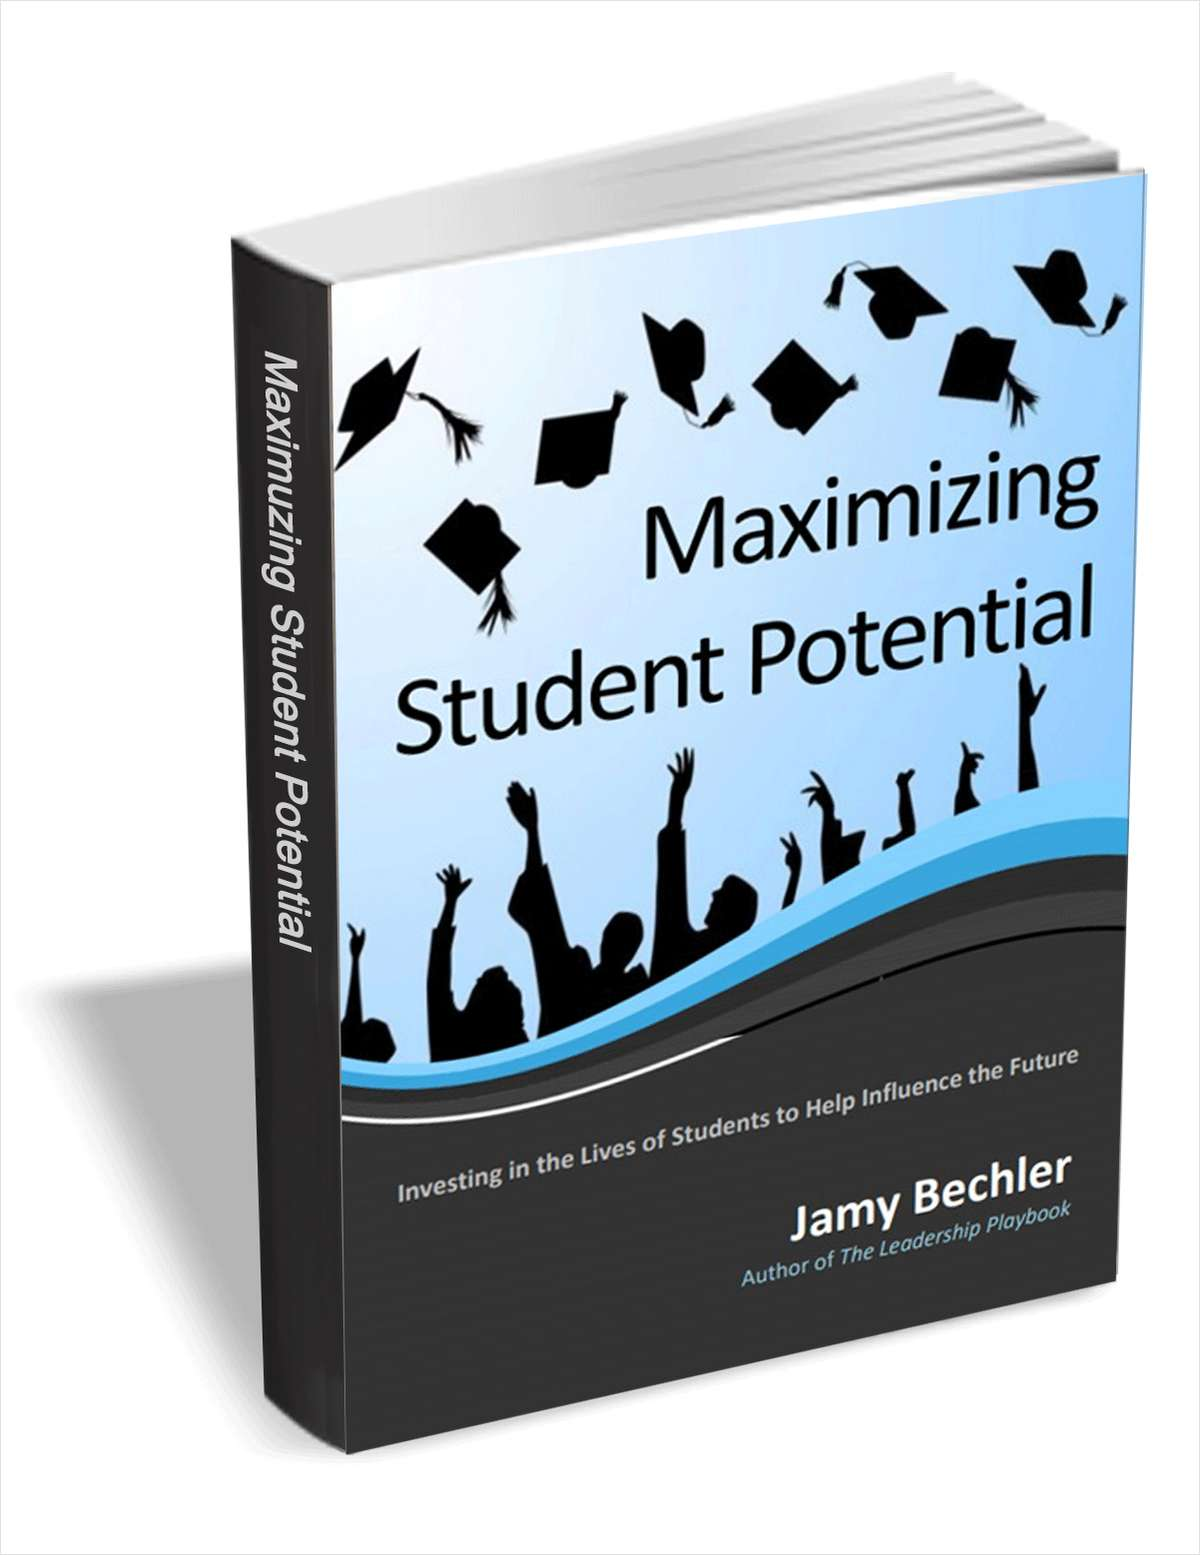 Maximizing Student Potential - Investing in the Lives of Students to Help Influence the Future